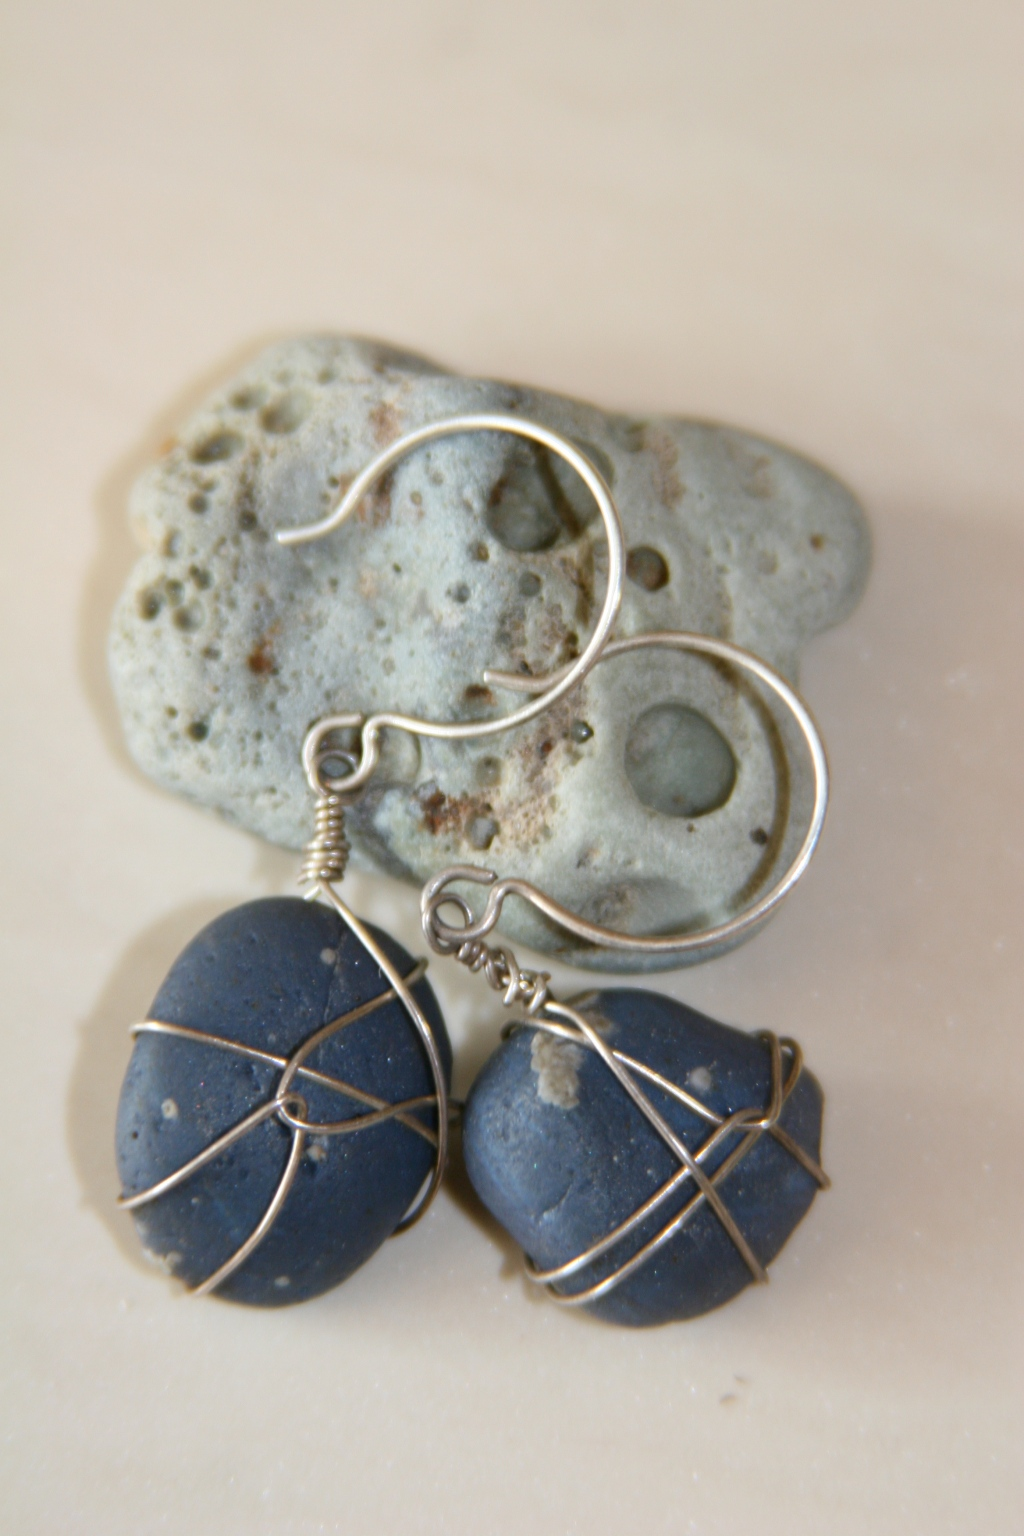 French ear wires used with Leland Blue Stones for one of a kind earrings.